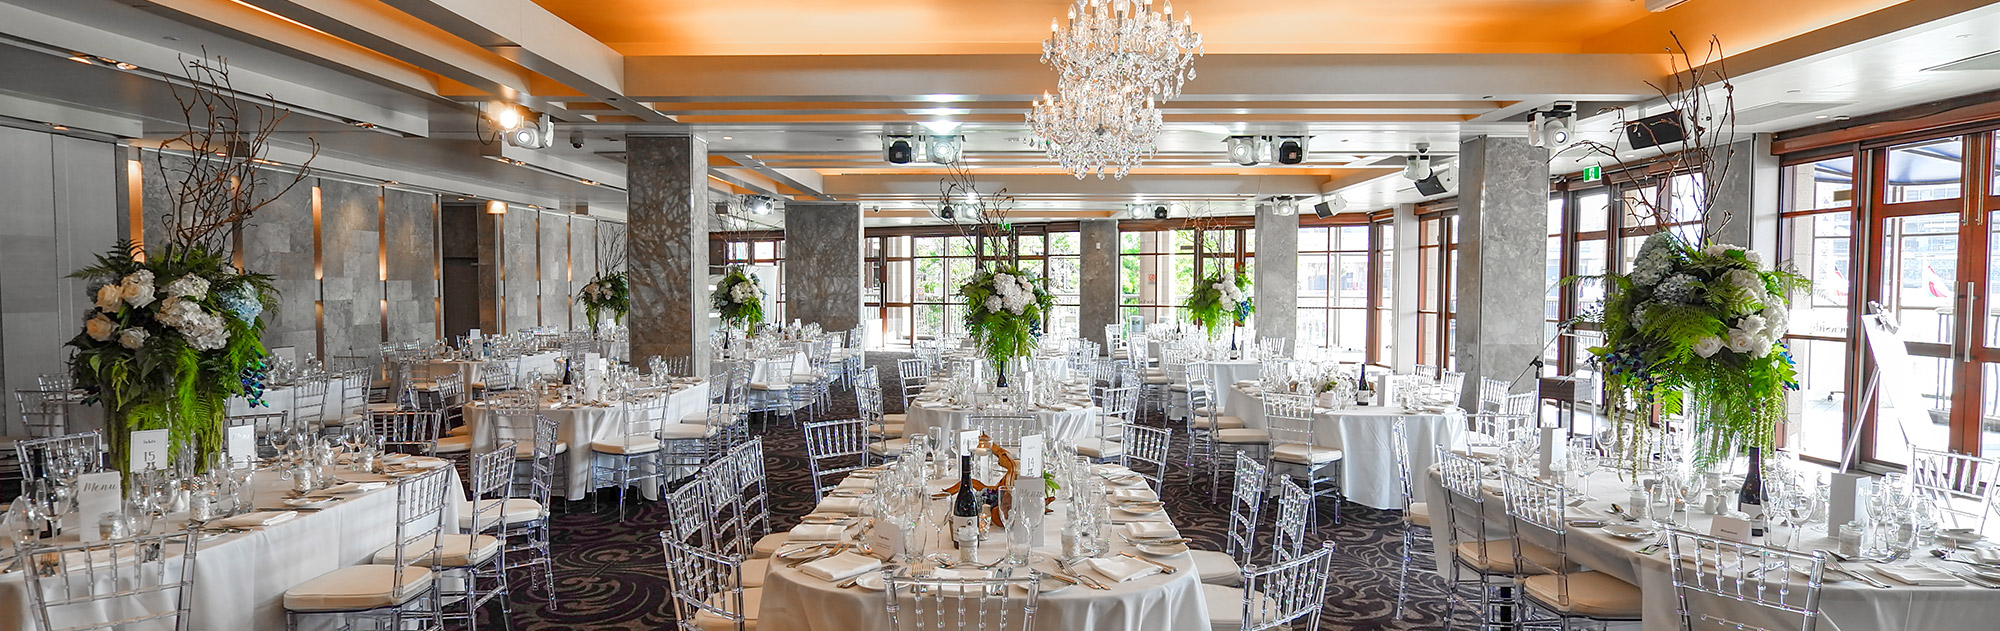 Iconic waterfront venues sydney weddings conference meeting sunday 2018 weddings from 95pp solutioingenieria Gallery